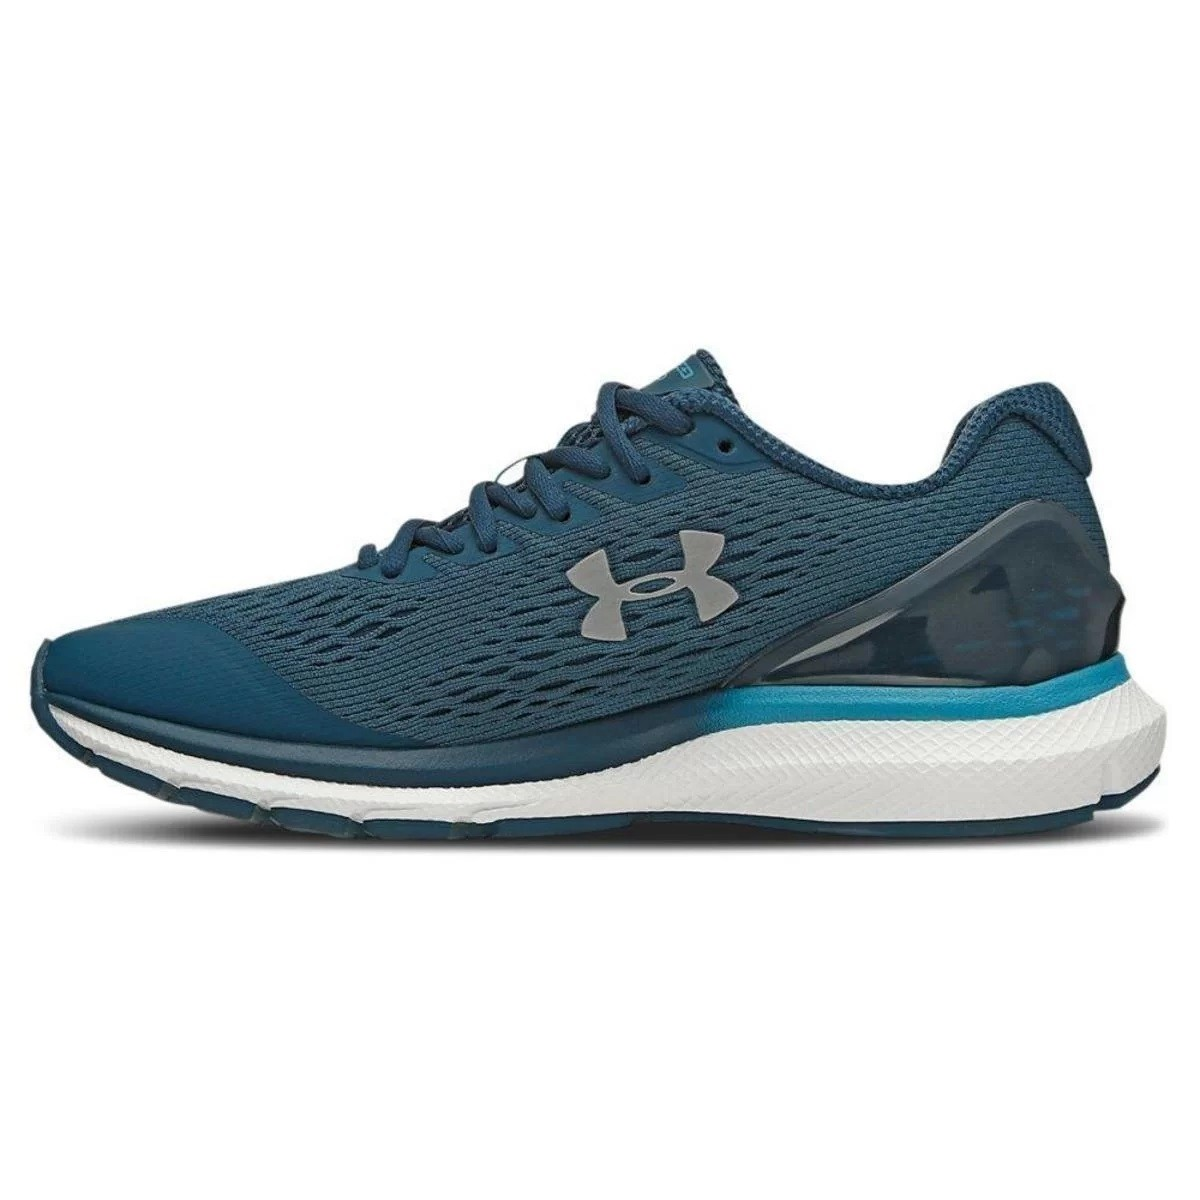 Tênis Under Armour Charged Extend Masculino Azul Petróleo